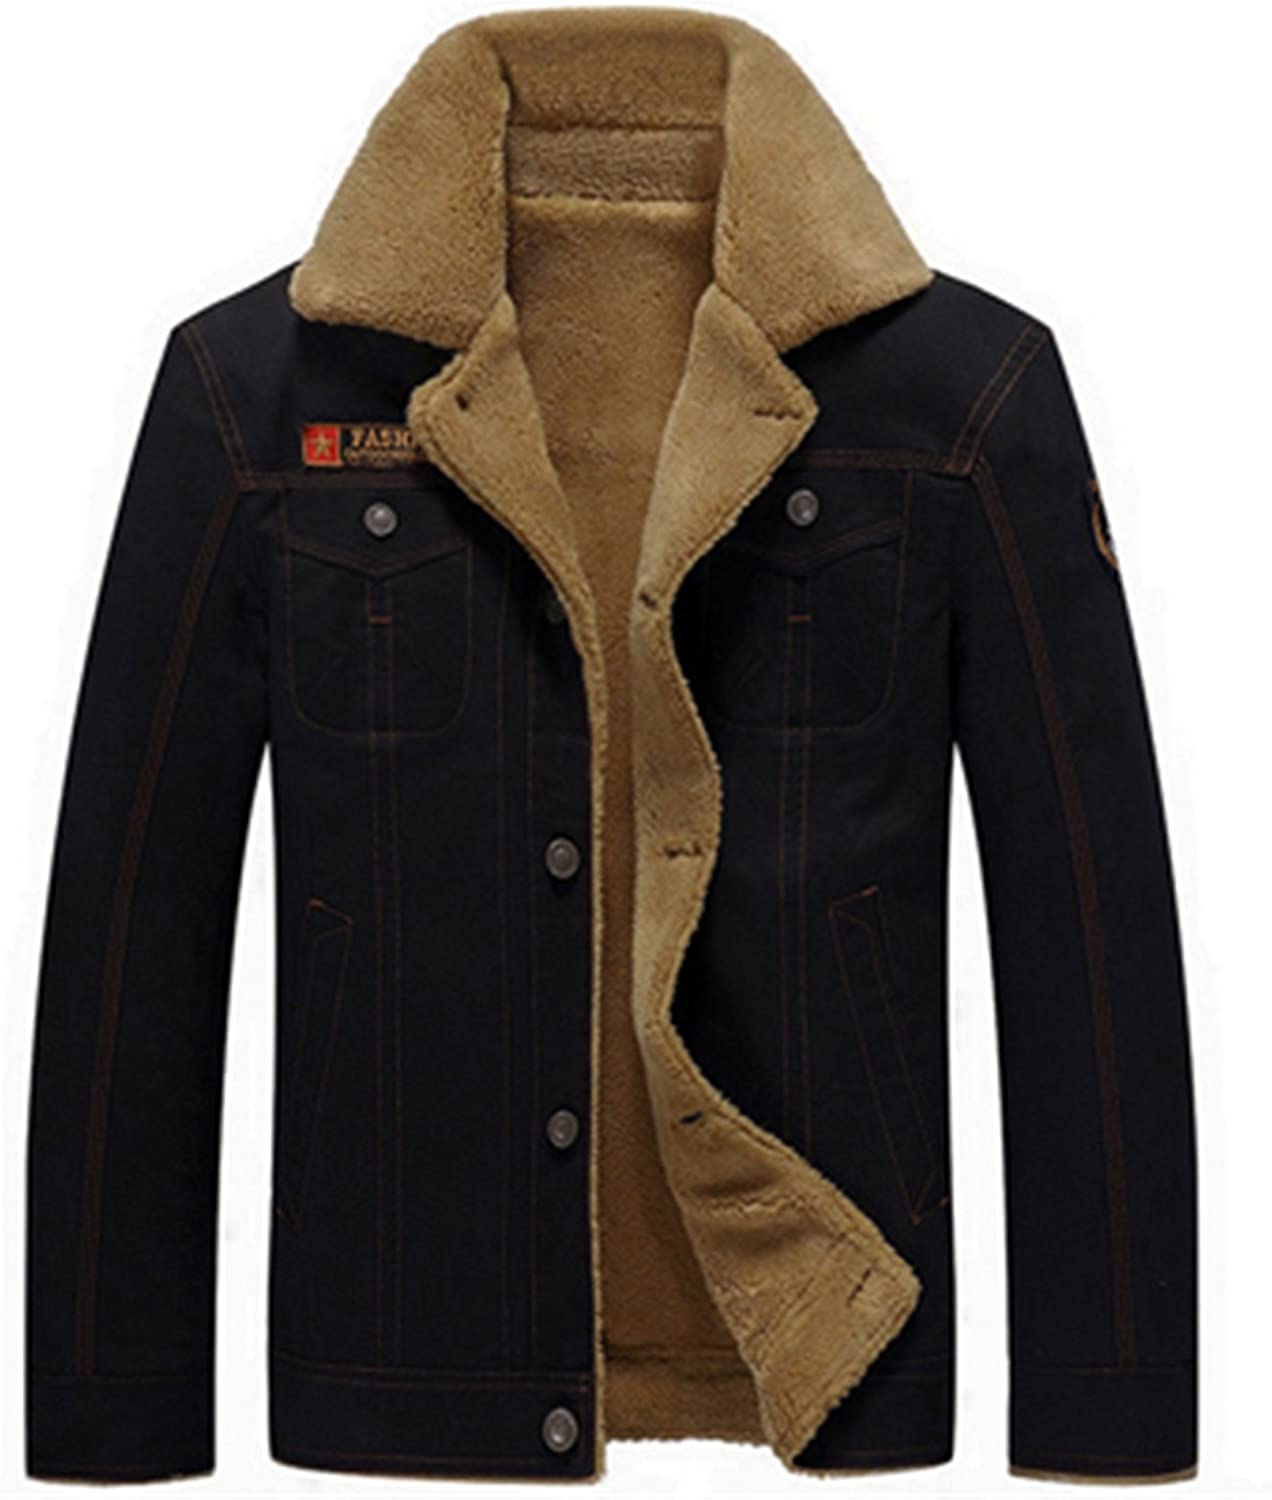 Olive Tayl Thicken Fleece Winter Jackets Mens Coats 5XL Cotton Fur Collar Mens Jackets Military Casual Male Outerwear